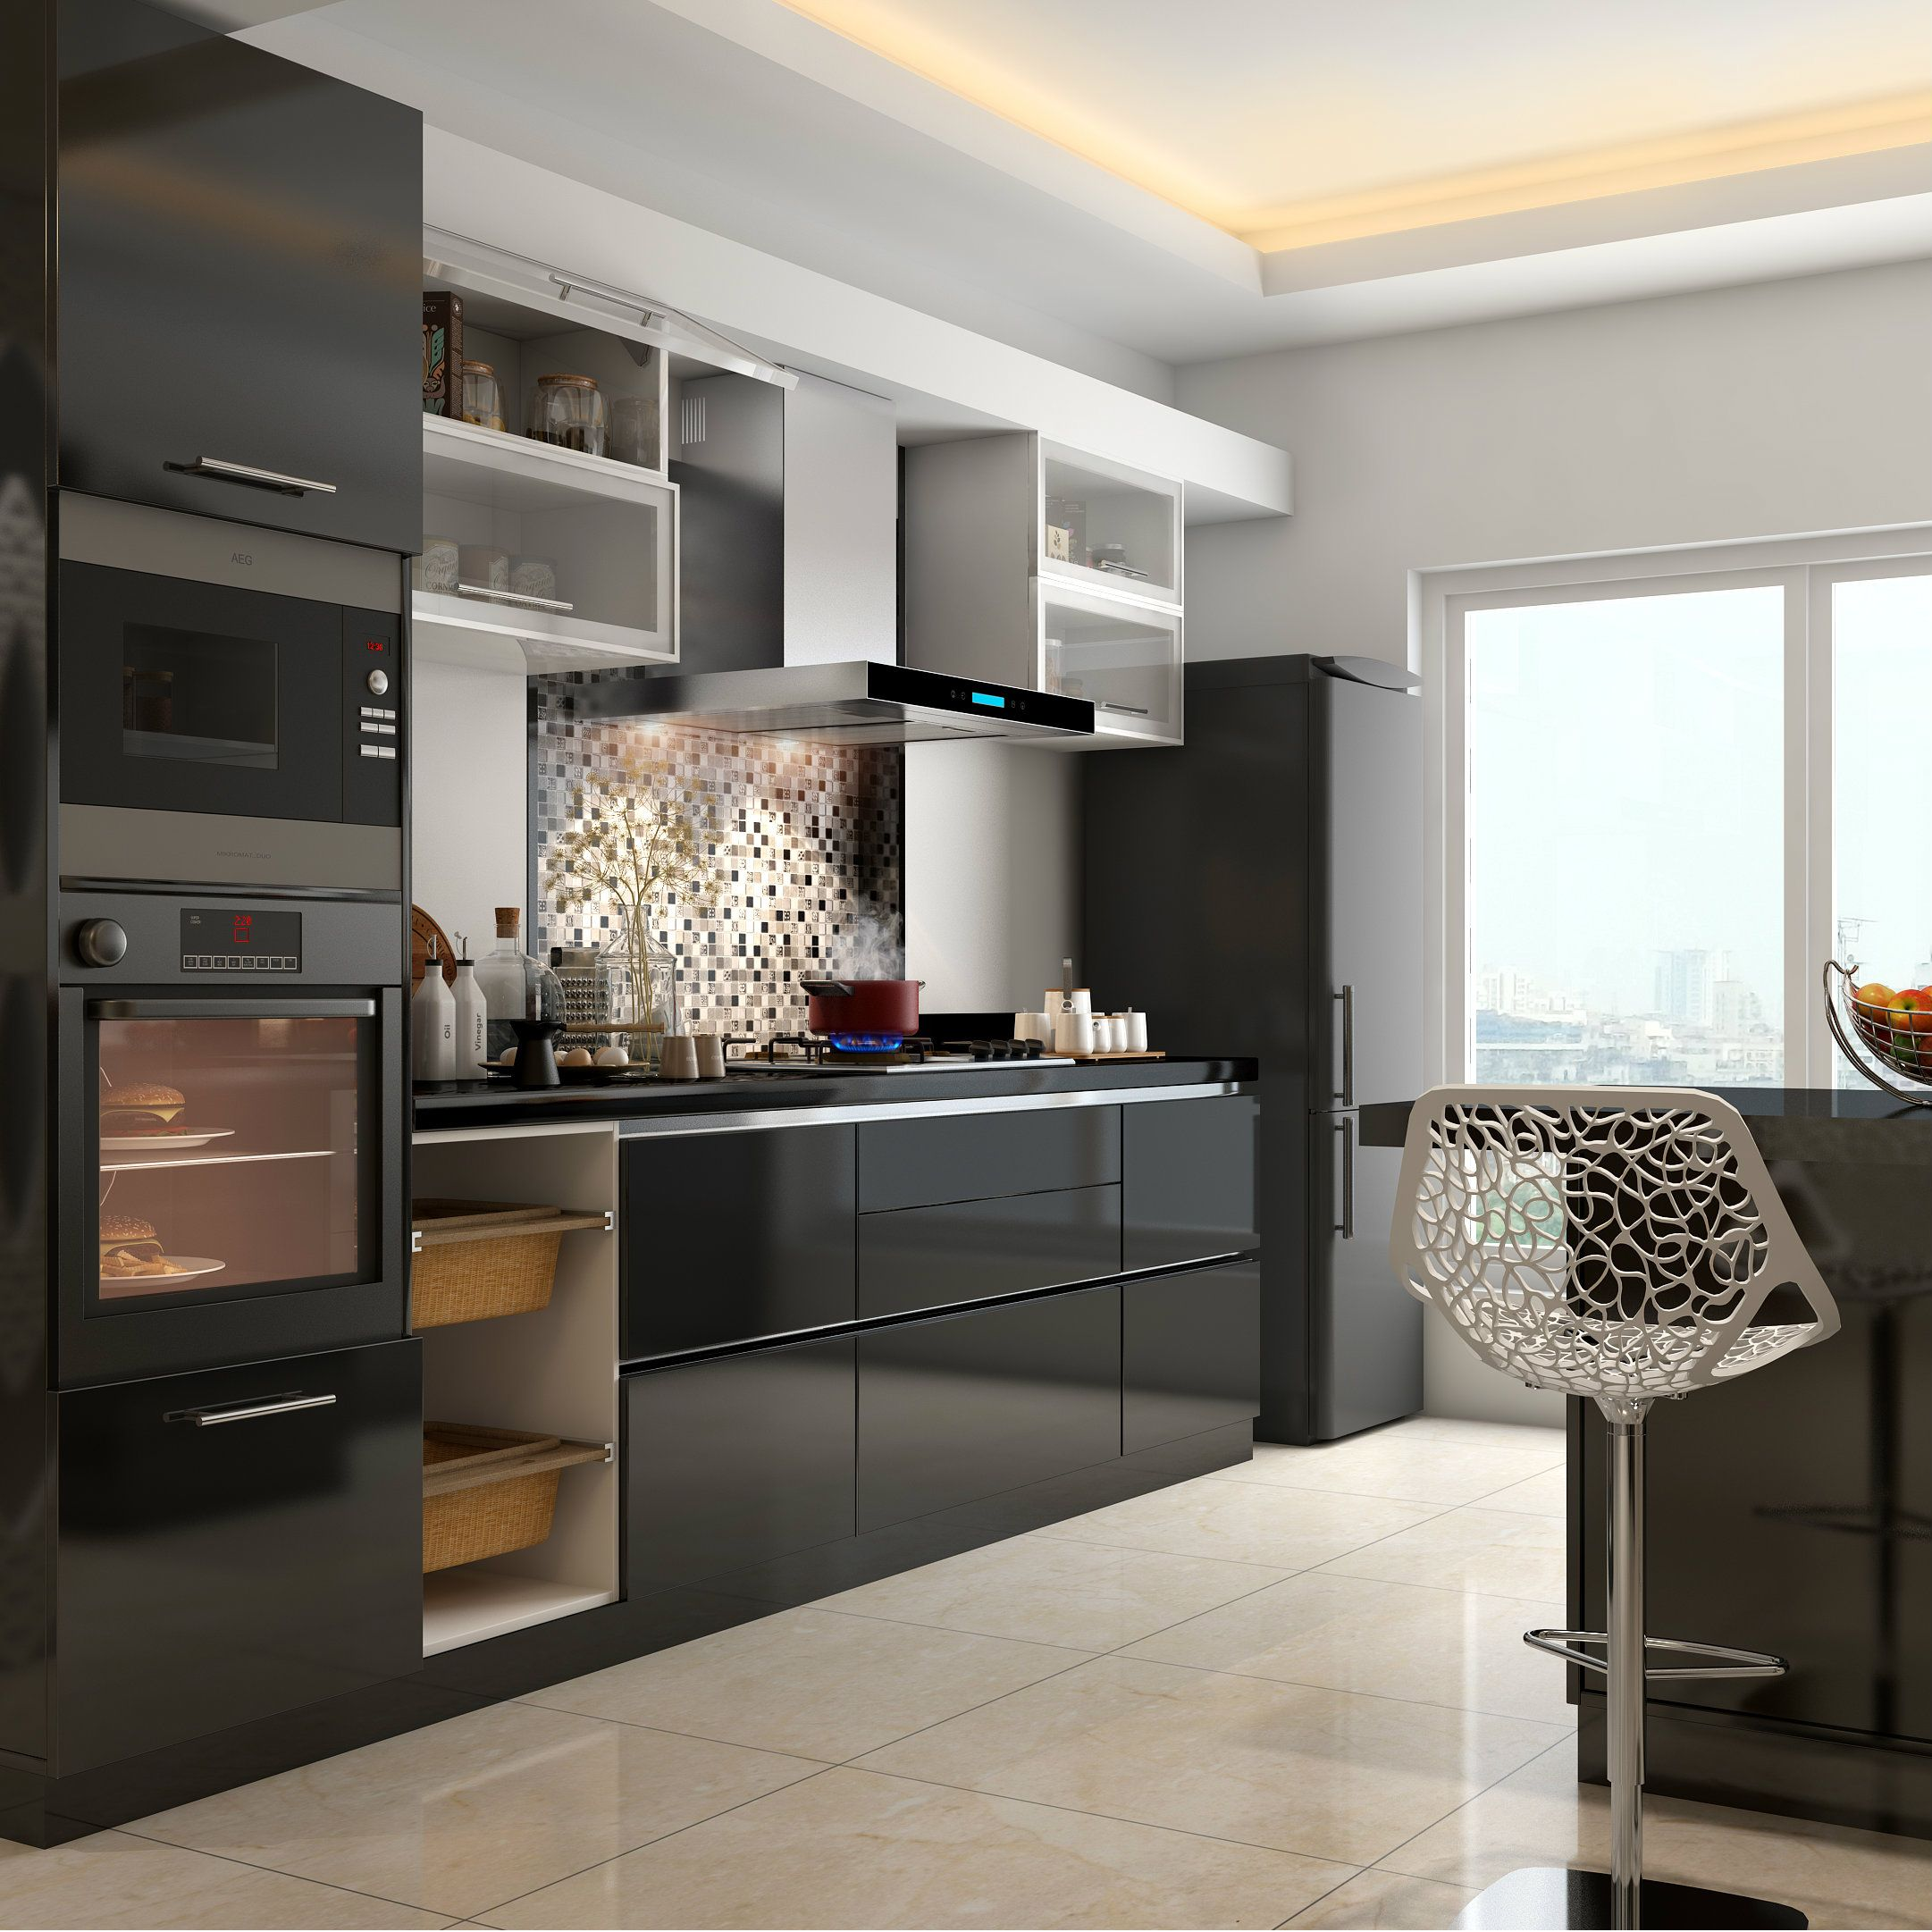 A Sleek Black Modular Kitchen With Built In Appliances